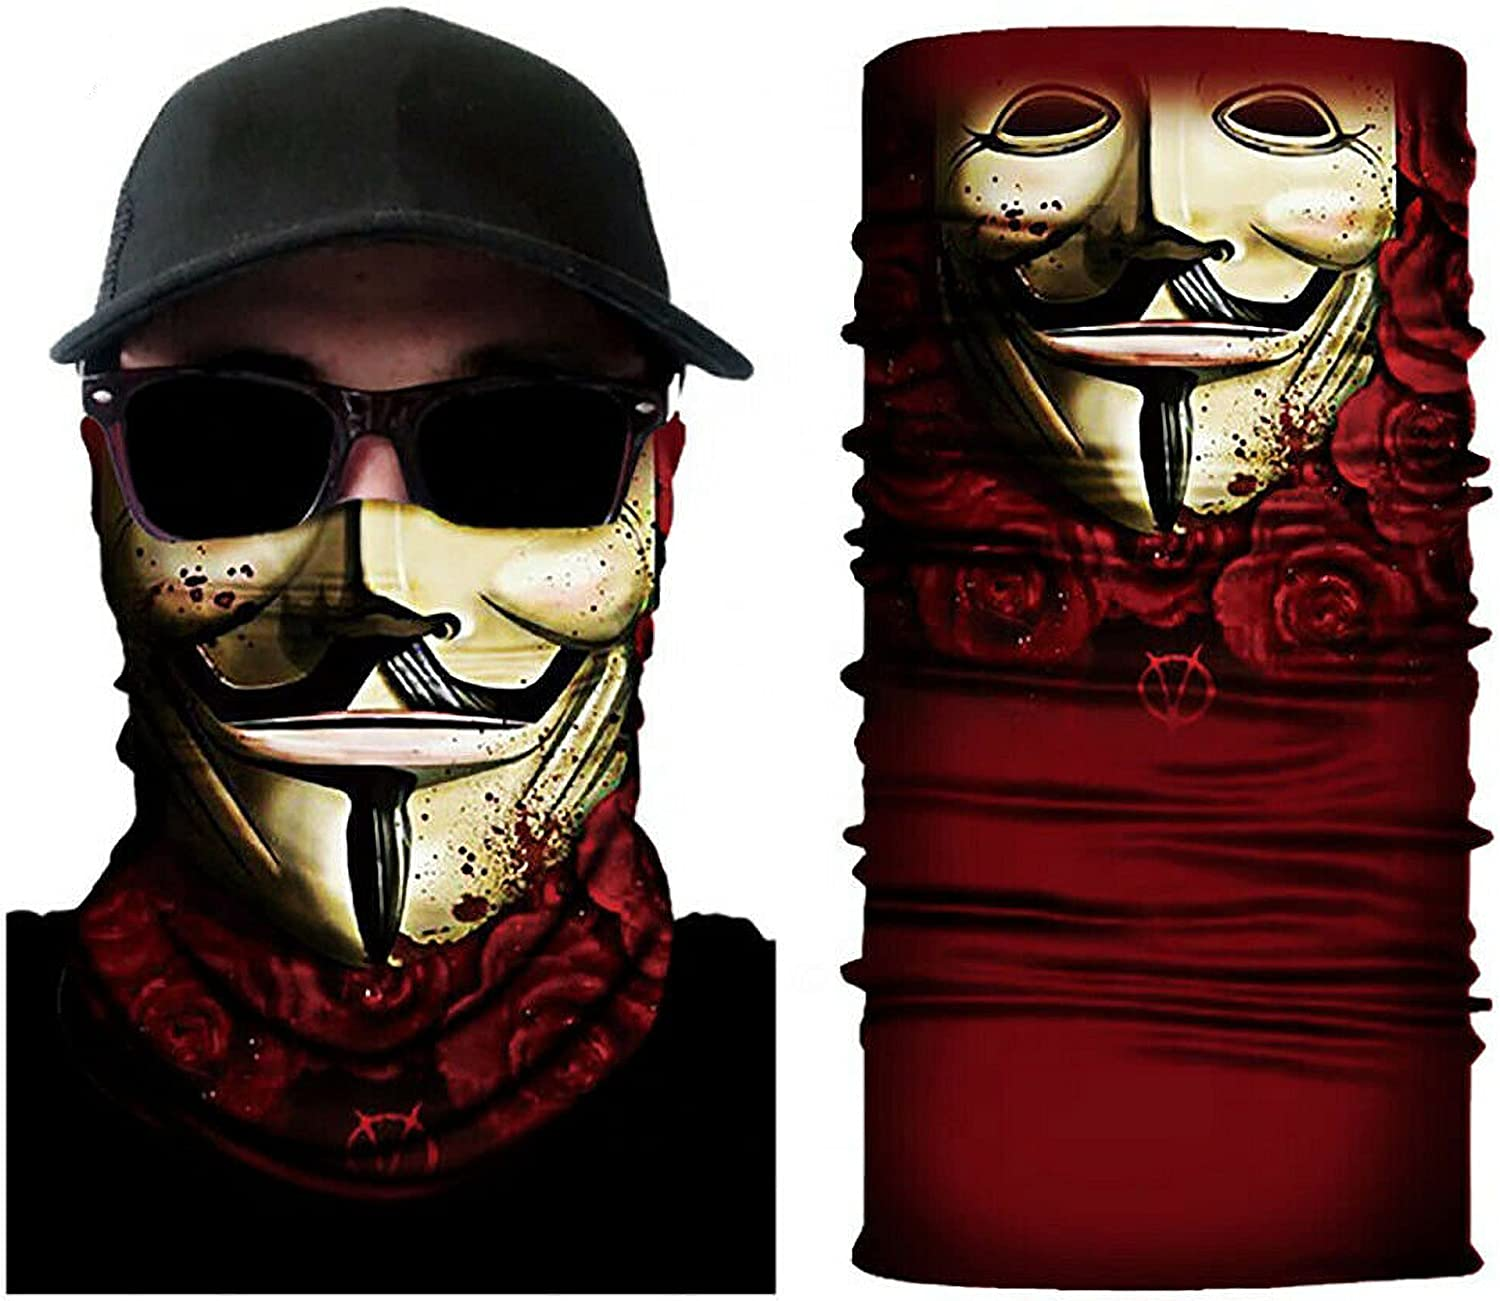 VPK set of 6 or 5 or 4 pcs Bandana Scarf Face Mask Balaclava Neck Mouth Cover for Motorcycling Fishing Cycling Sun